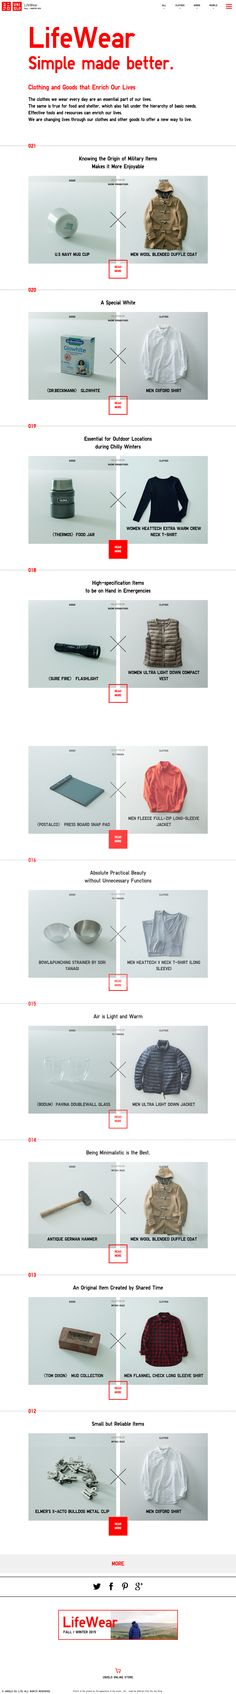 http://lifewear.uniqlo.com/us/simplemadebetter/